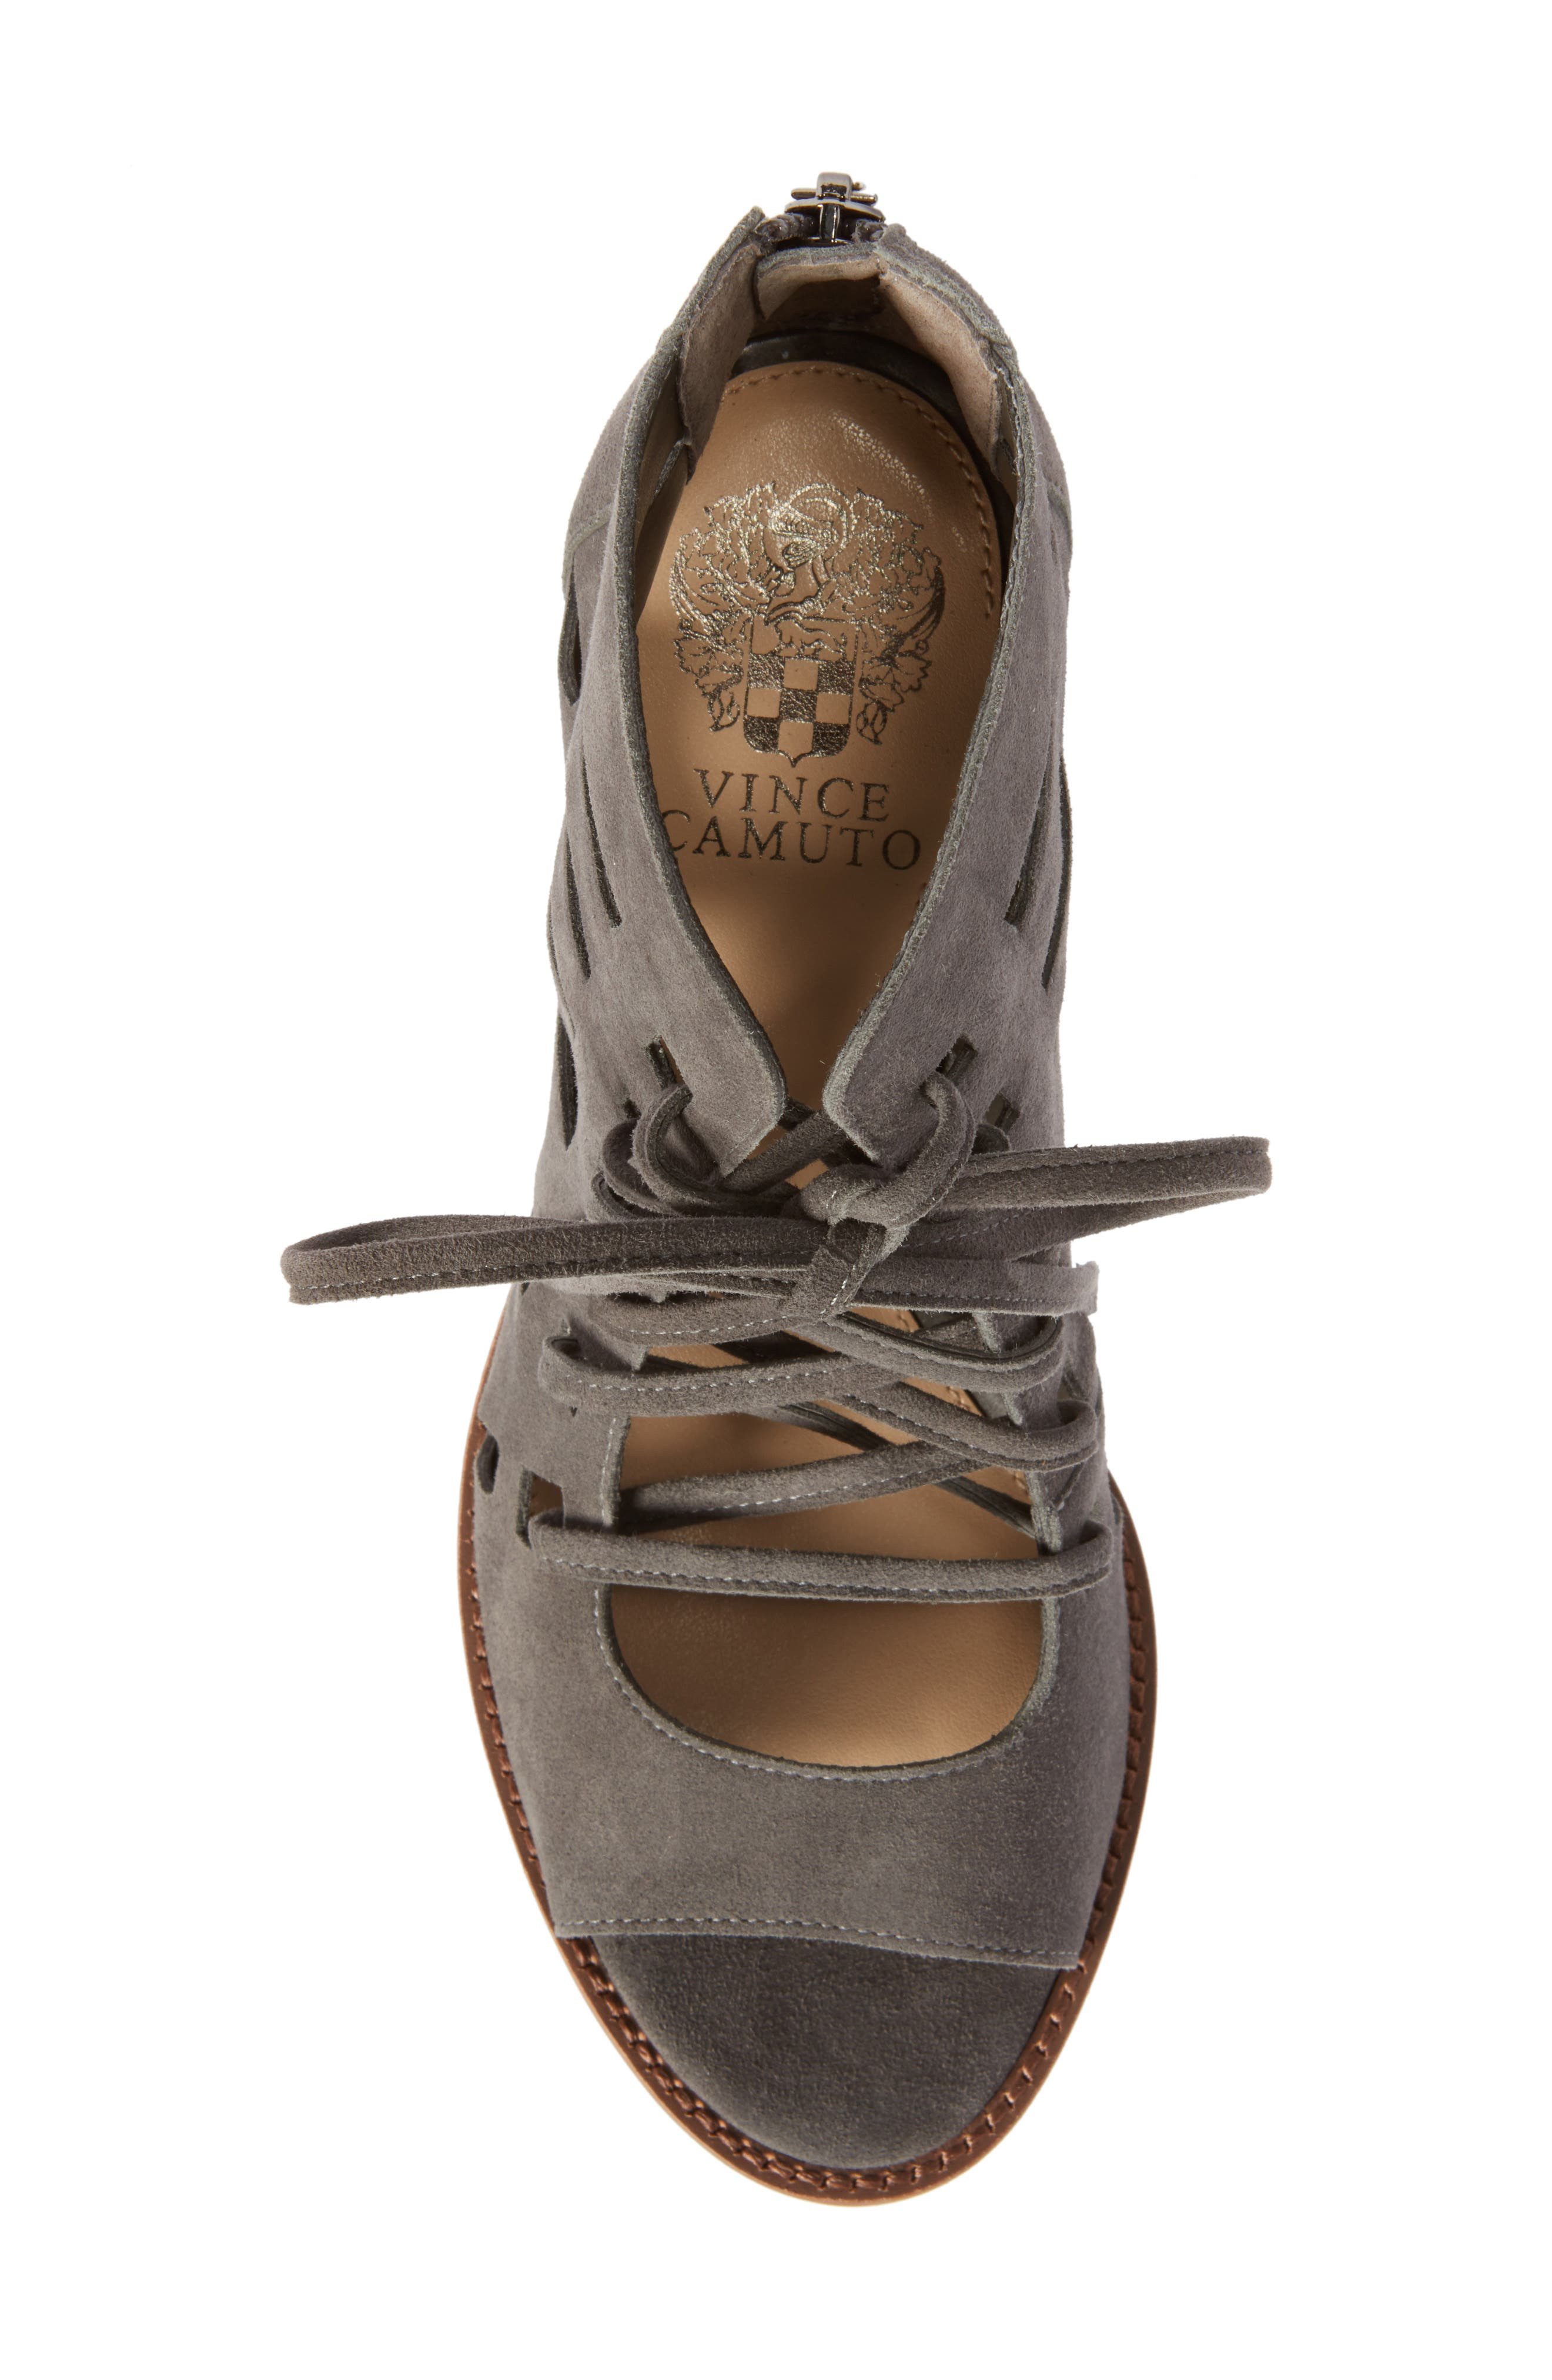 Tressa Perforated Lace-Up Sandal,                             Alternate thumbnail 5, color,                             Greystone Suede